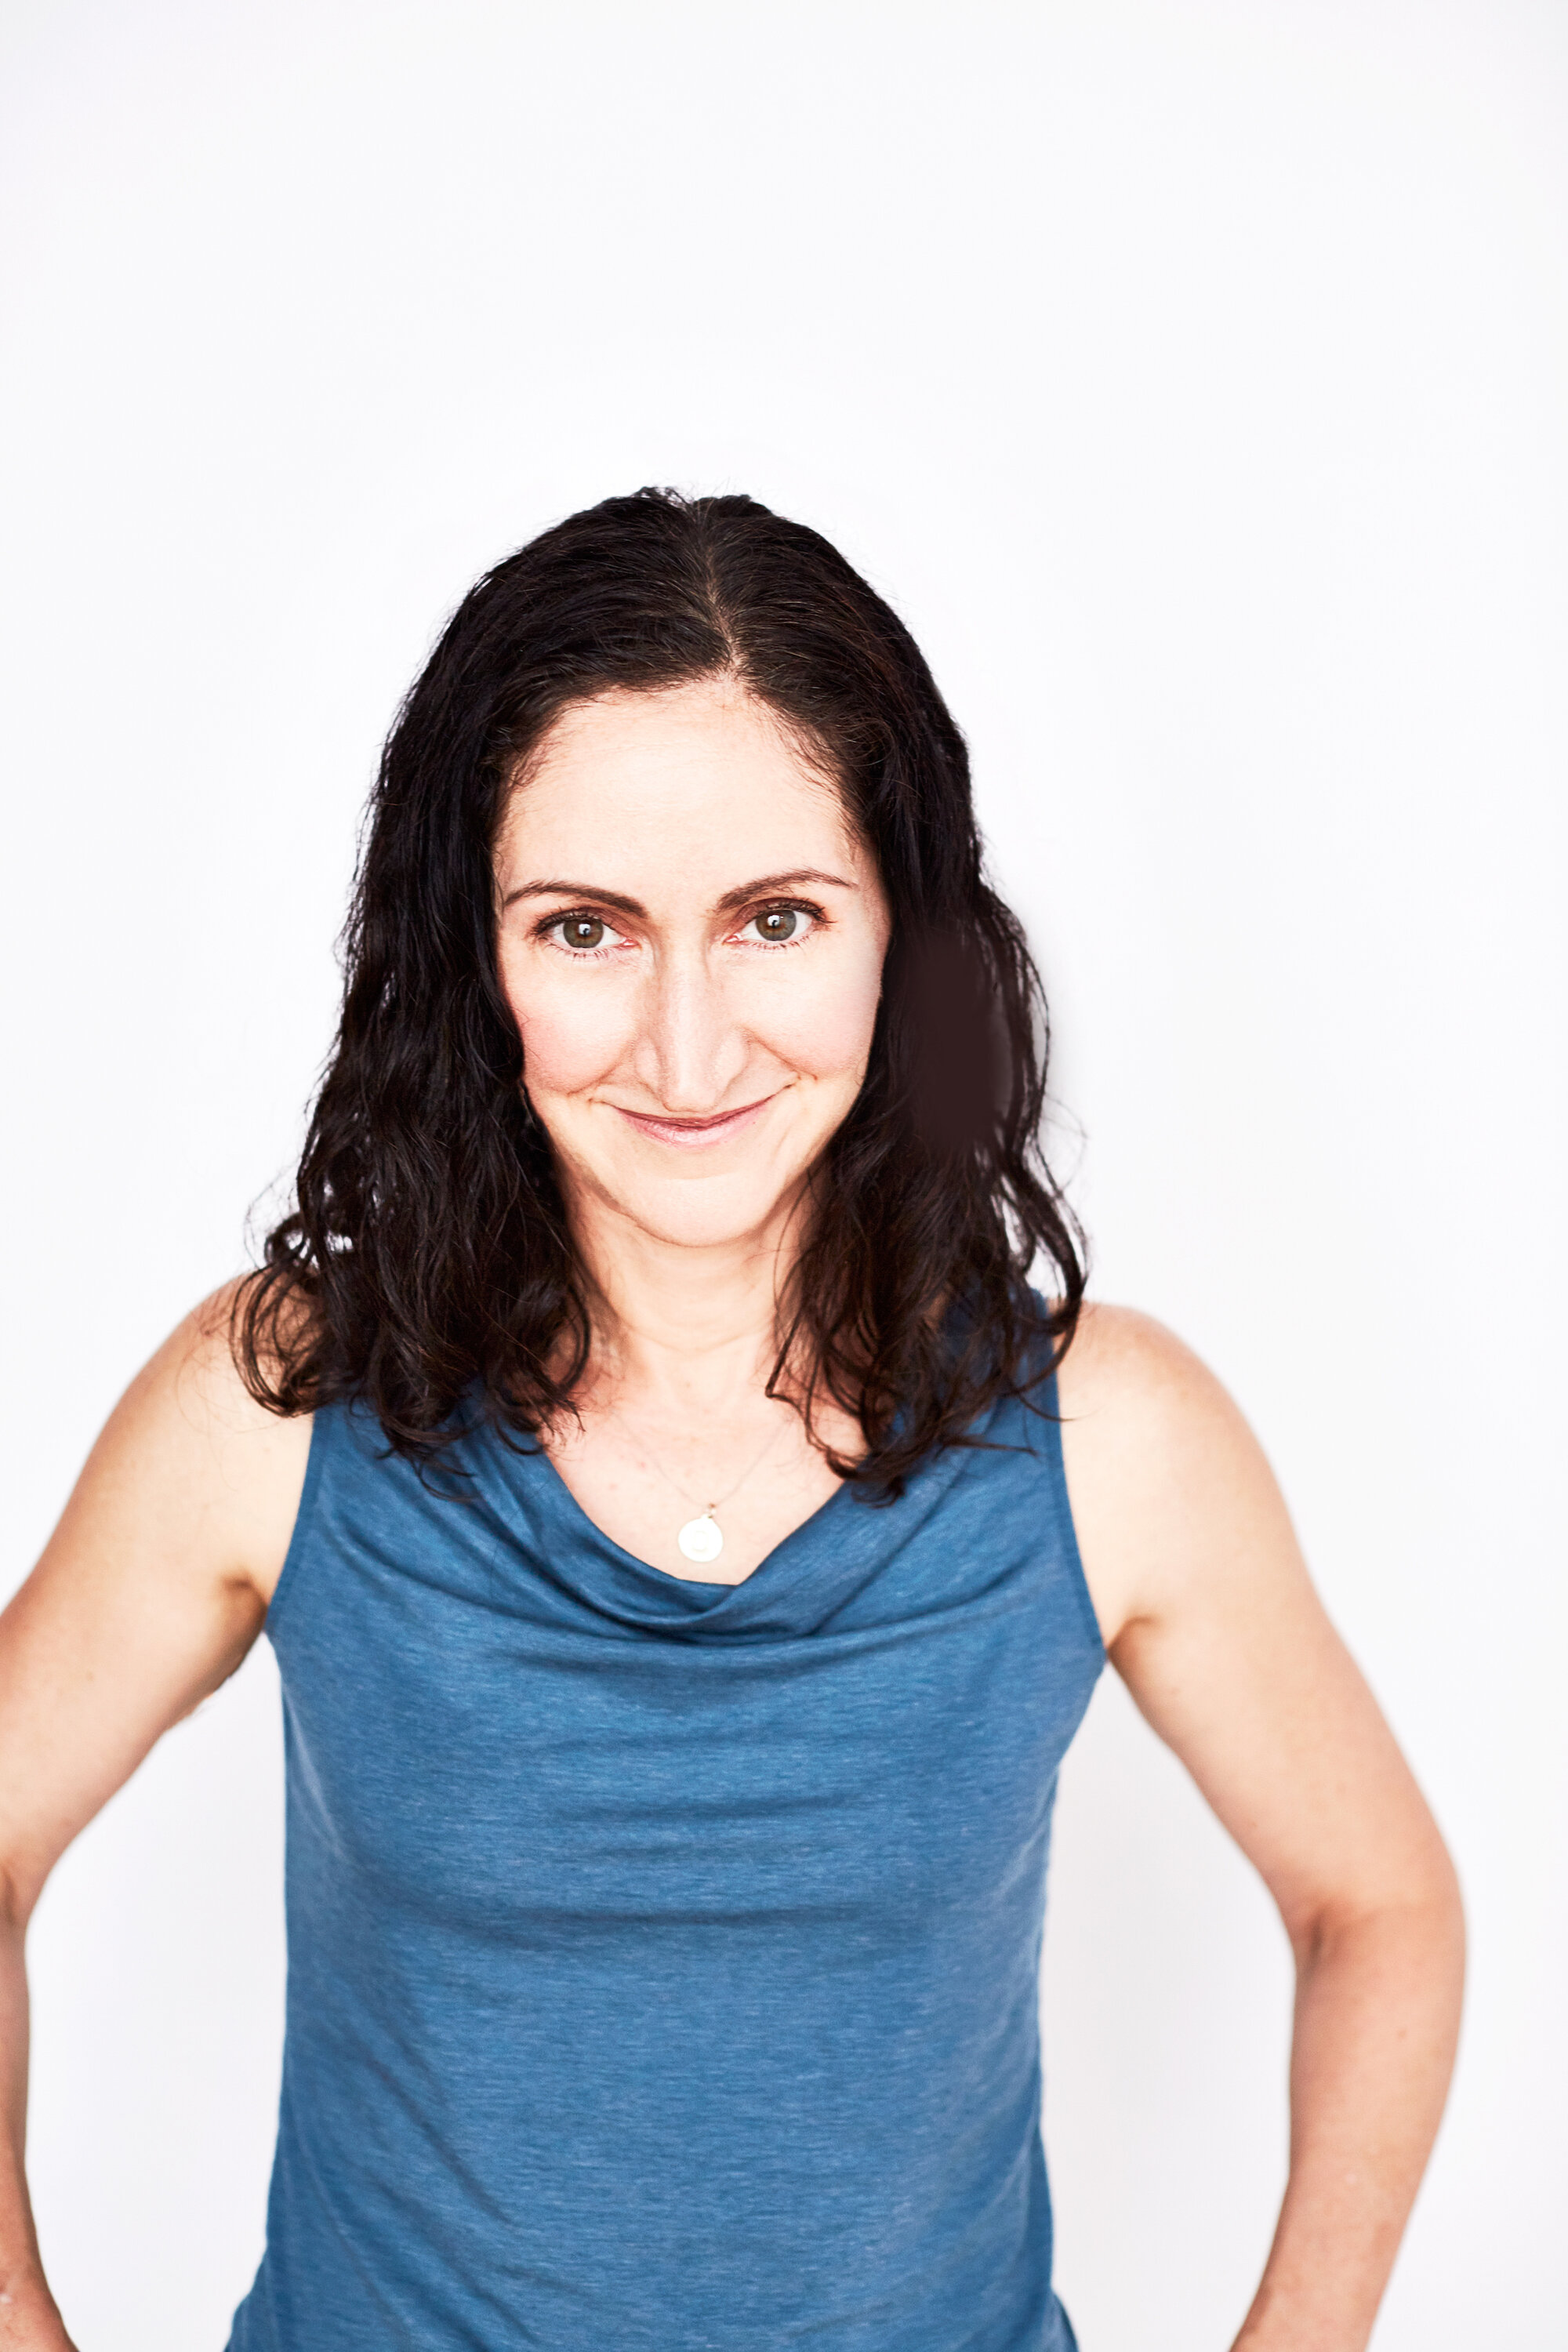 Beth Lipton: Food, health and wellness expert on Didn't I Just Feed You, a food podcast for parents (even the ones who don't love to cook!)